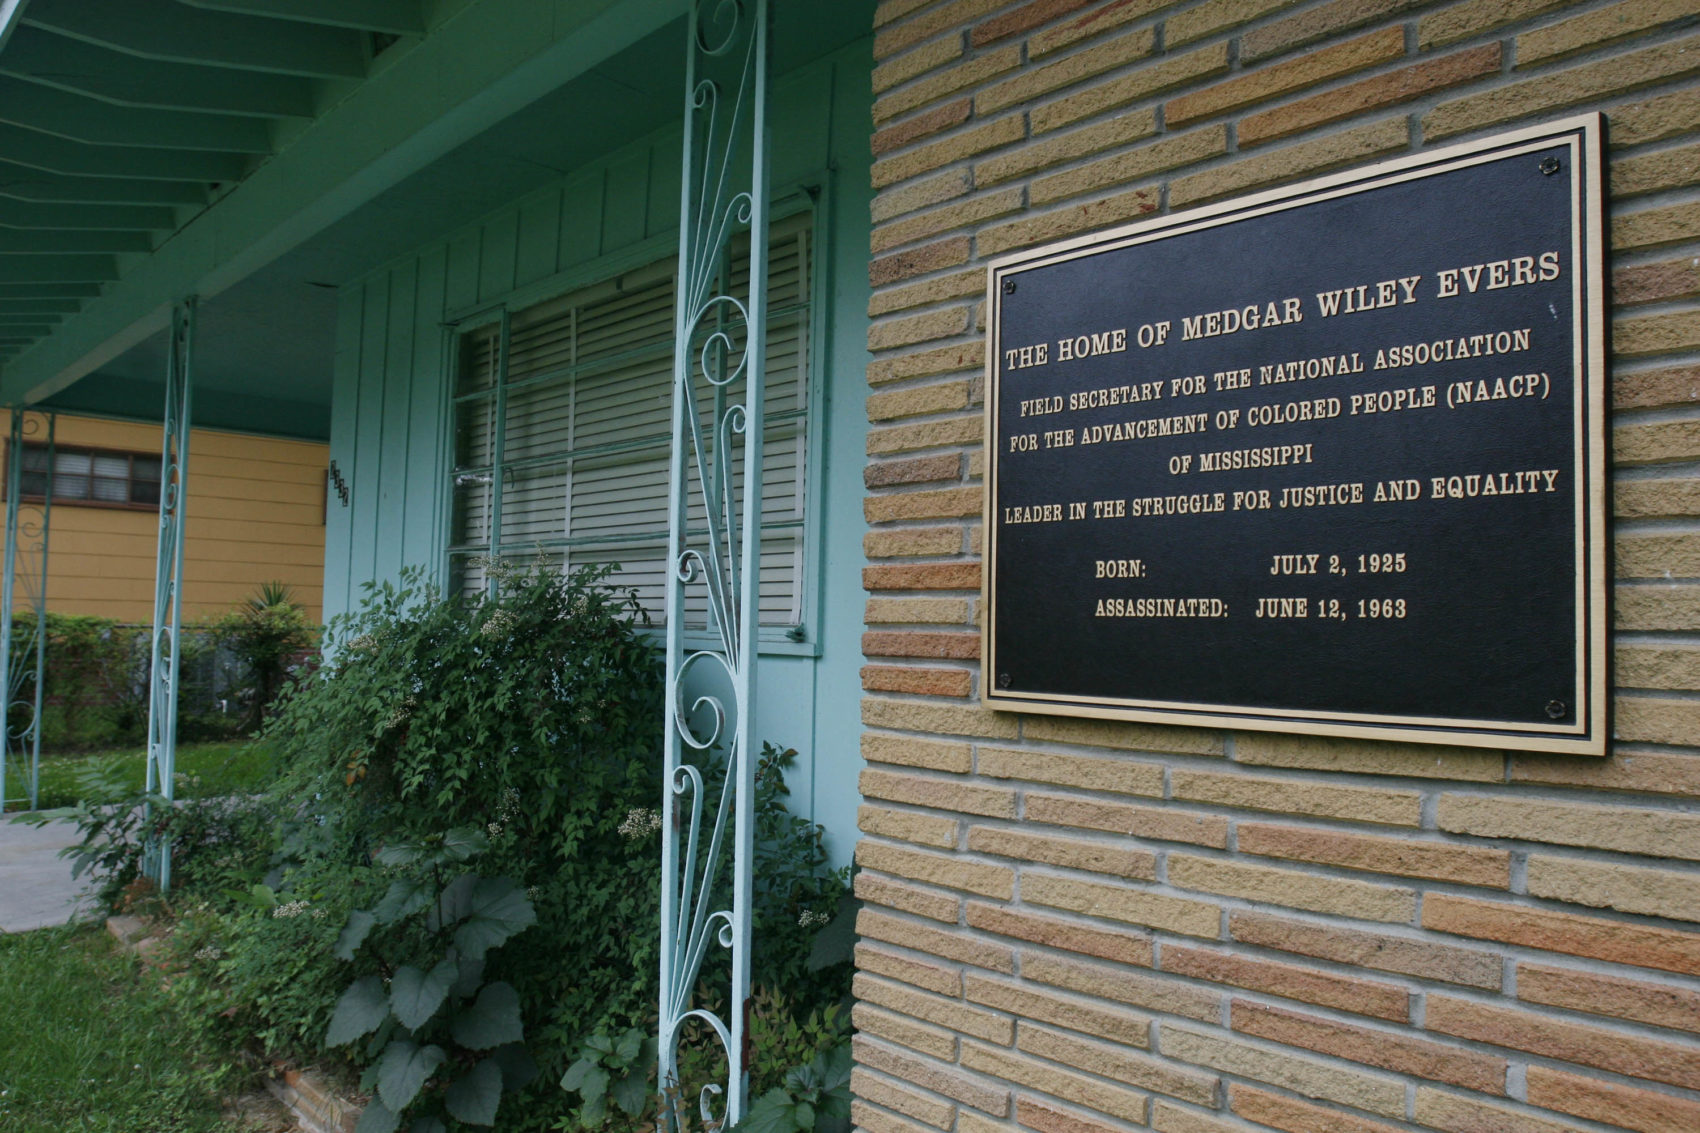 A plaque decorates the front of the home of the late civil rights activist Medgar Evers in Jackson, Miss. (Rogelio V. Solis/AP)